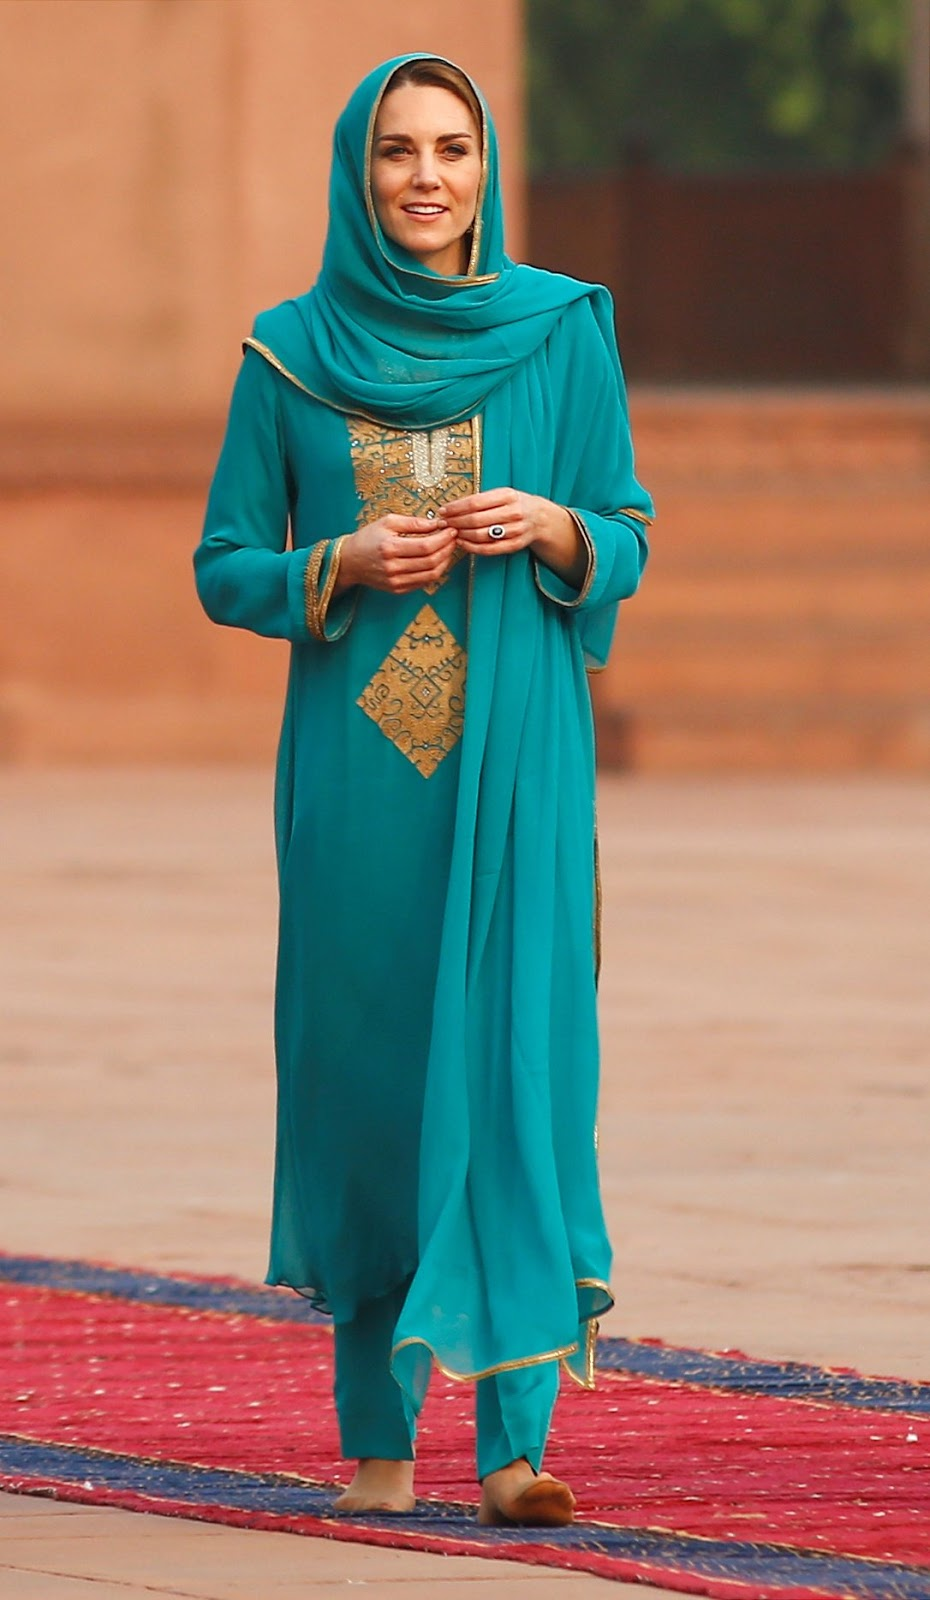 The Duchess of Cambridge impresses in teal as she visits Lahore's Badshahi Mosque